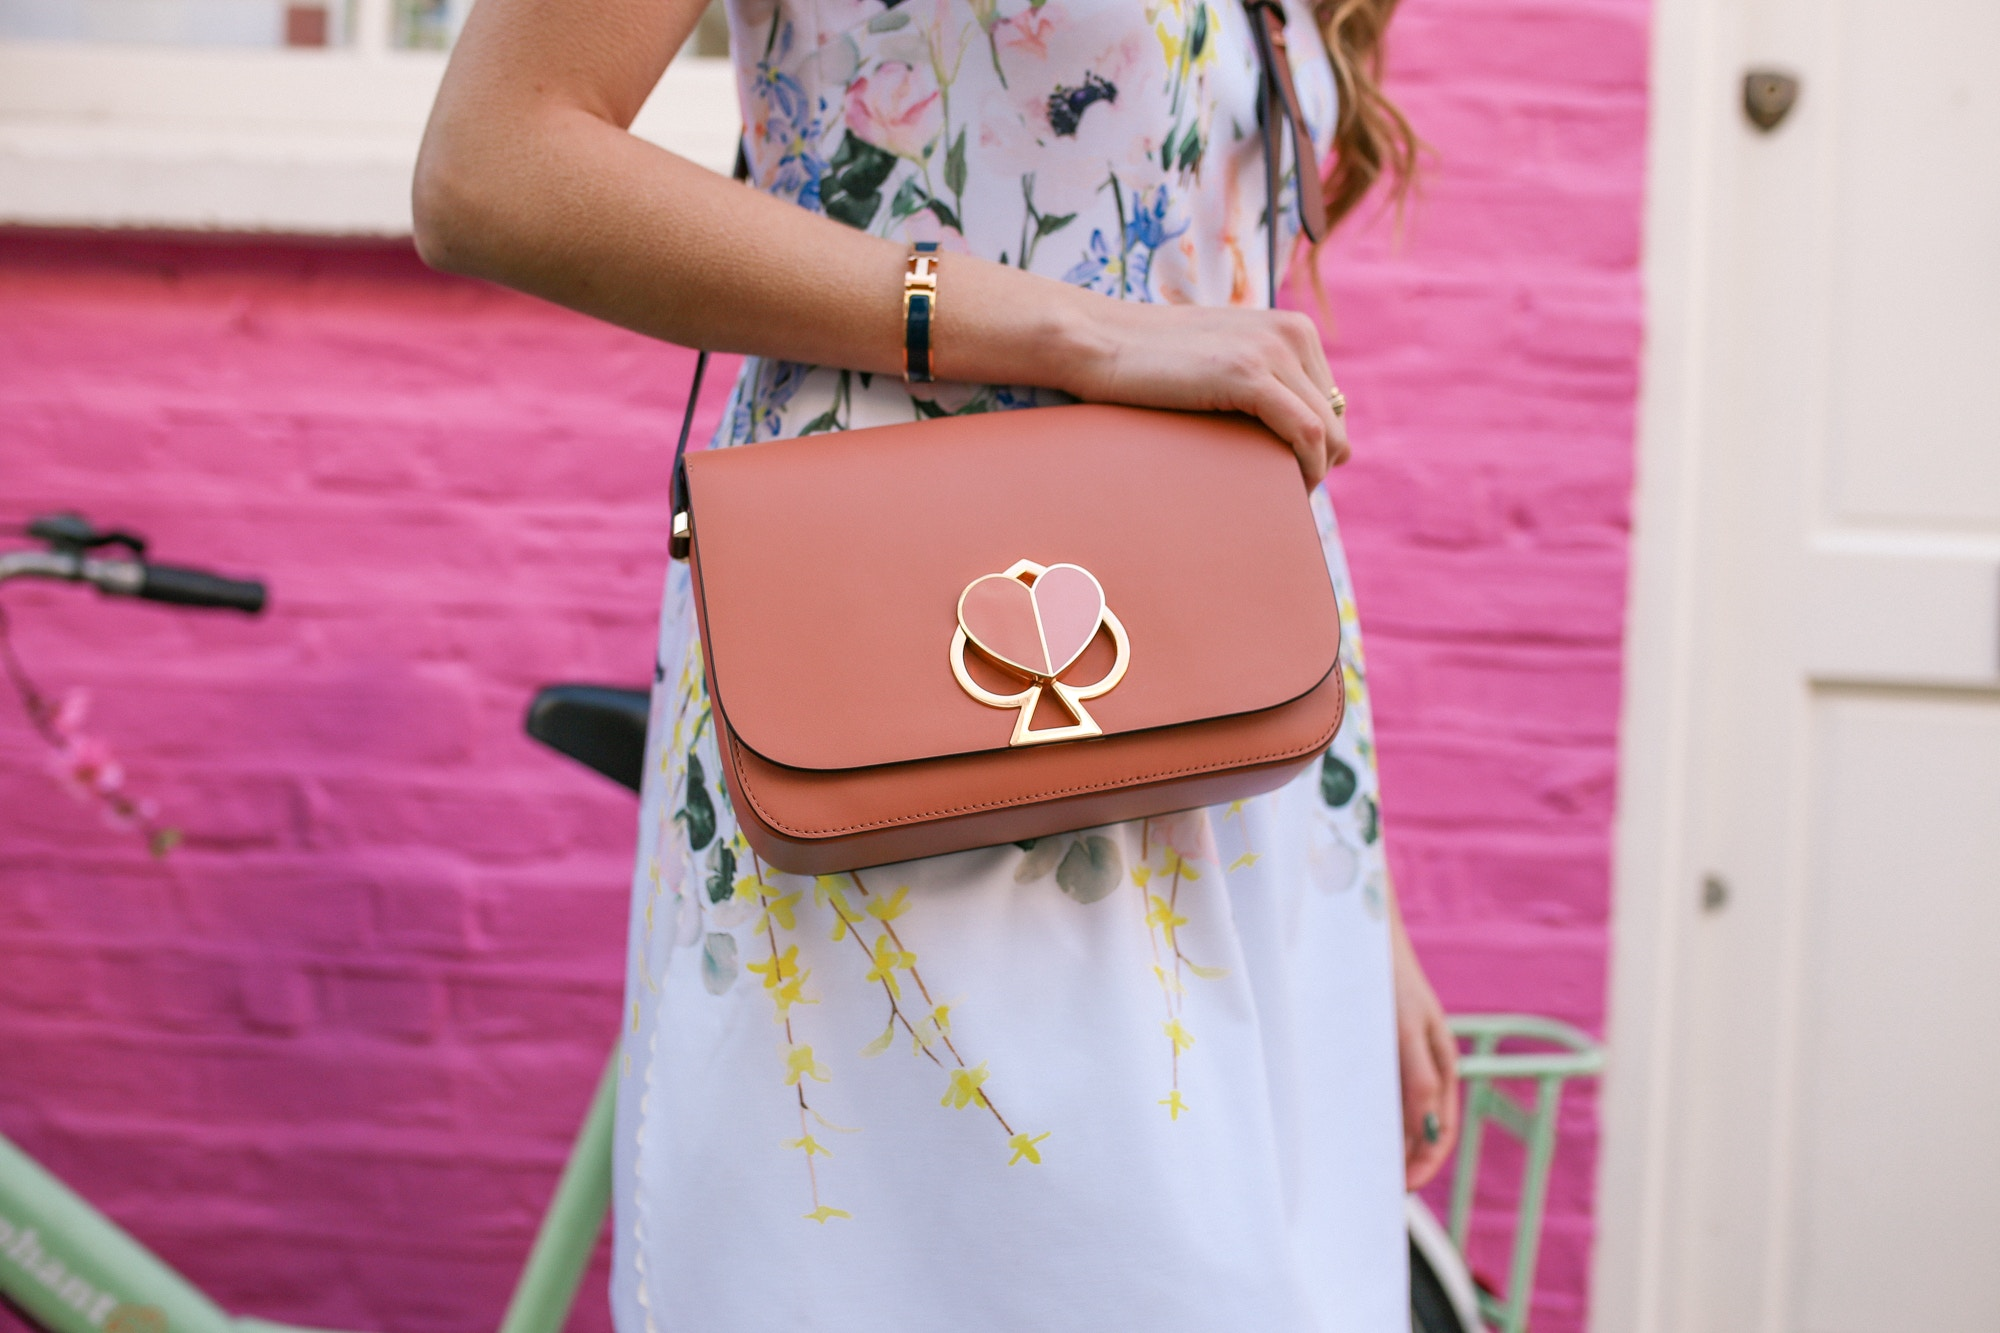 The Kate Spade Nikola bag is the perfect cute bag featuring a heart-shaped clasp.